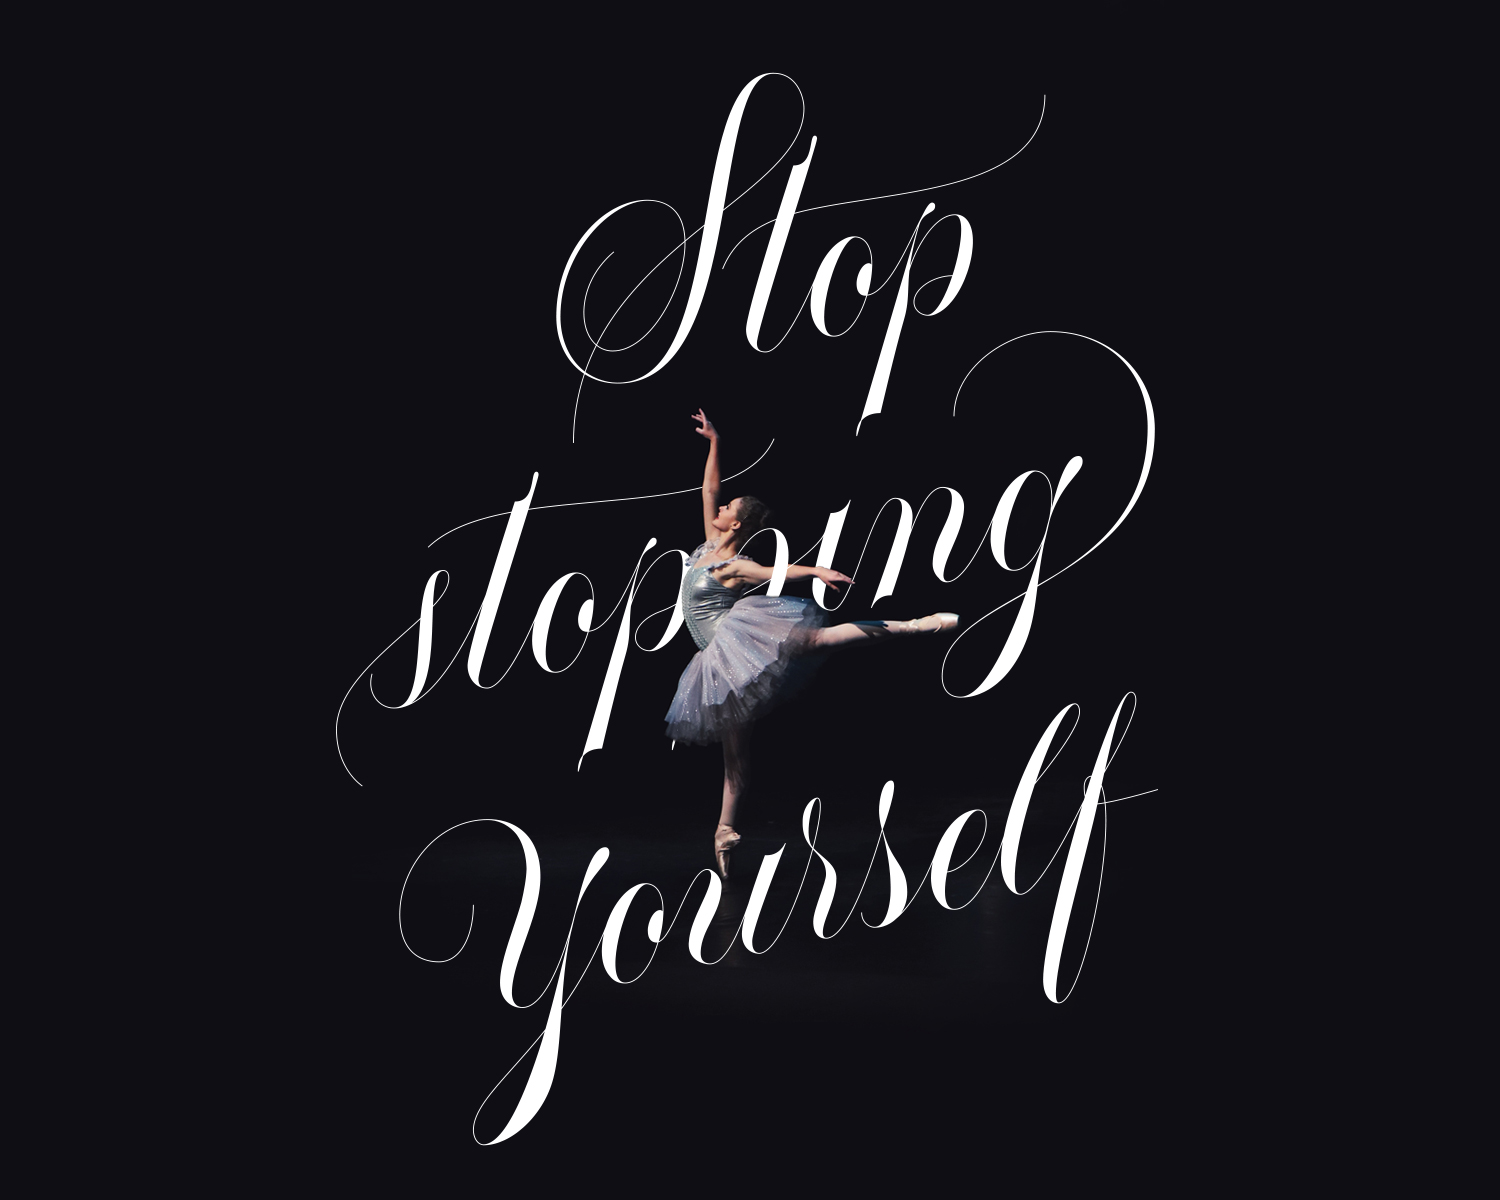 Stop Stopping Yourself_Farolito